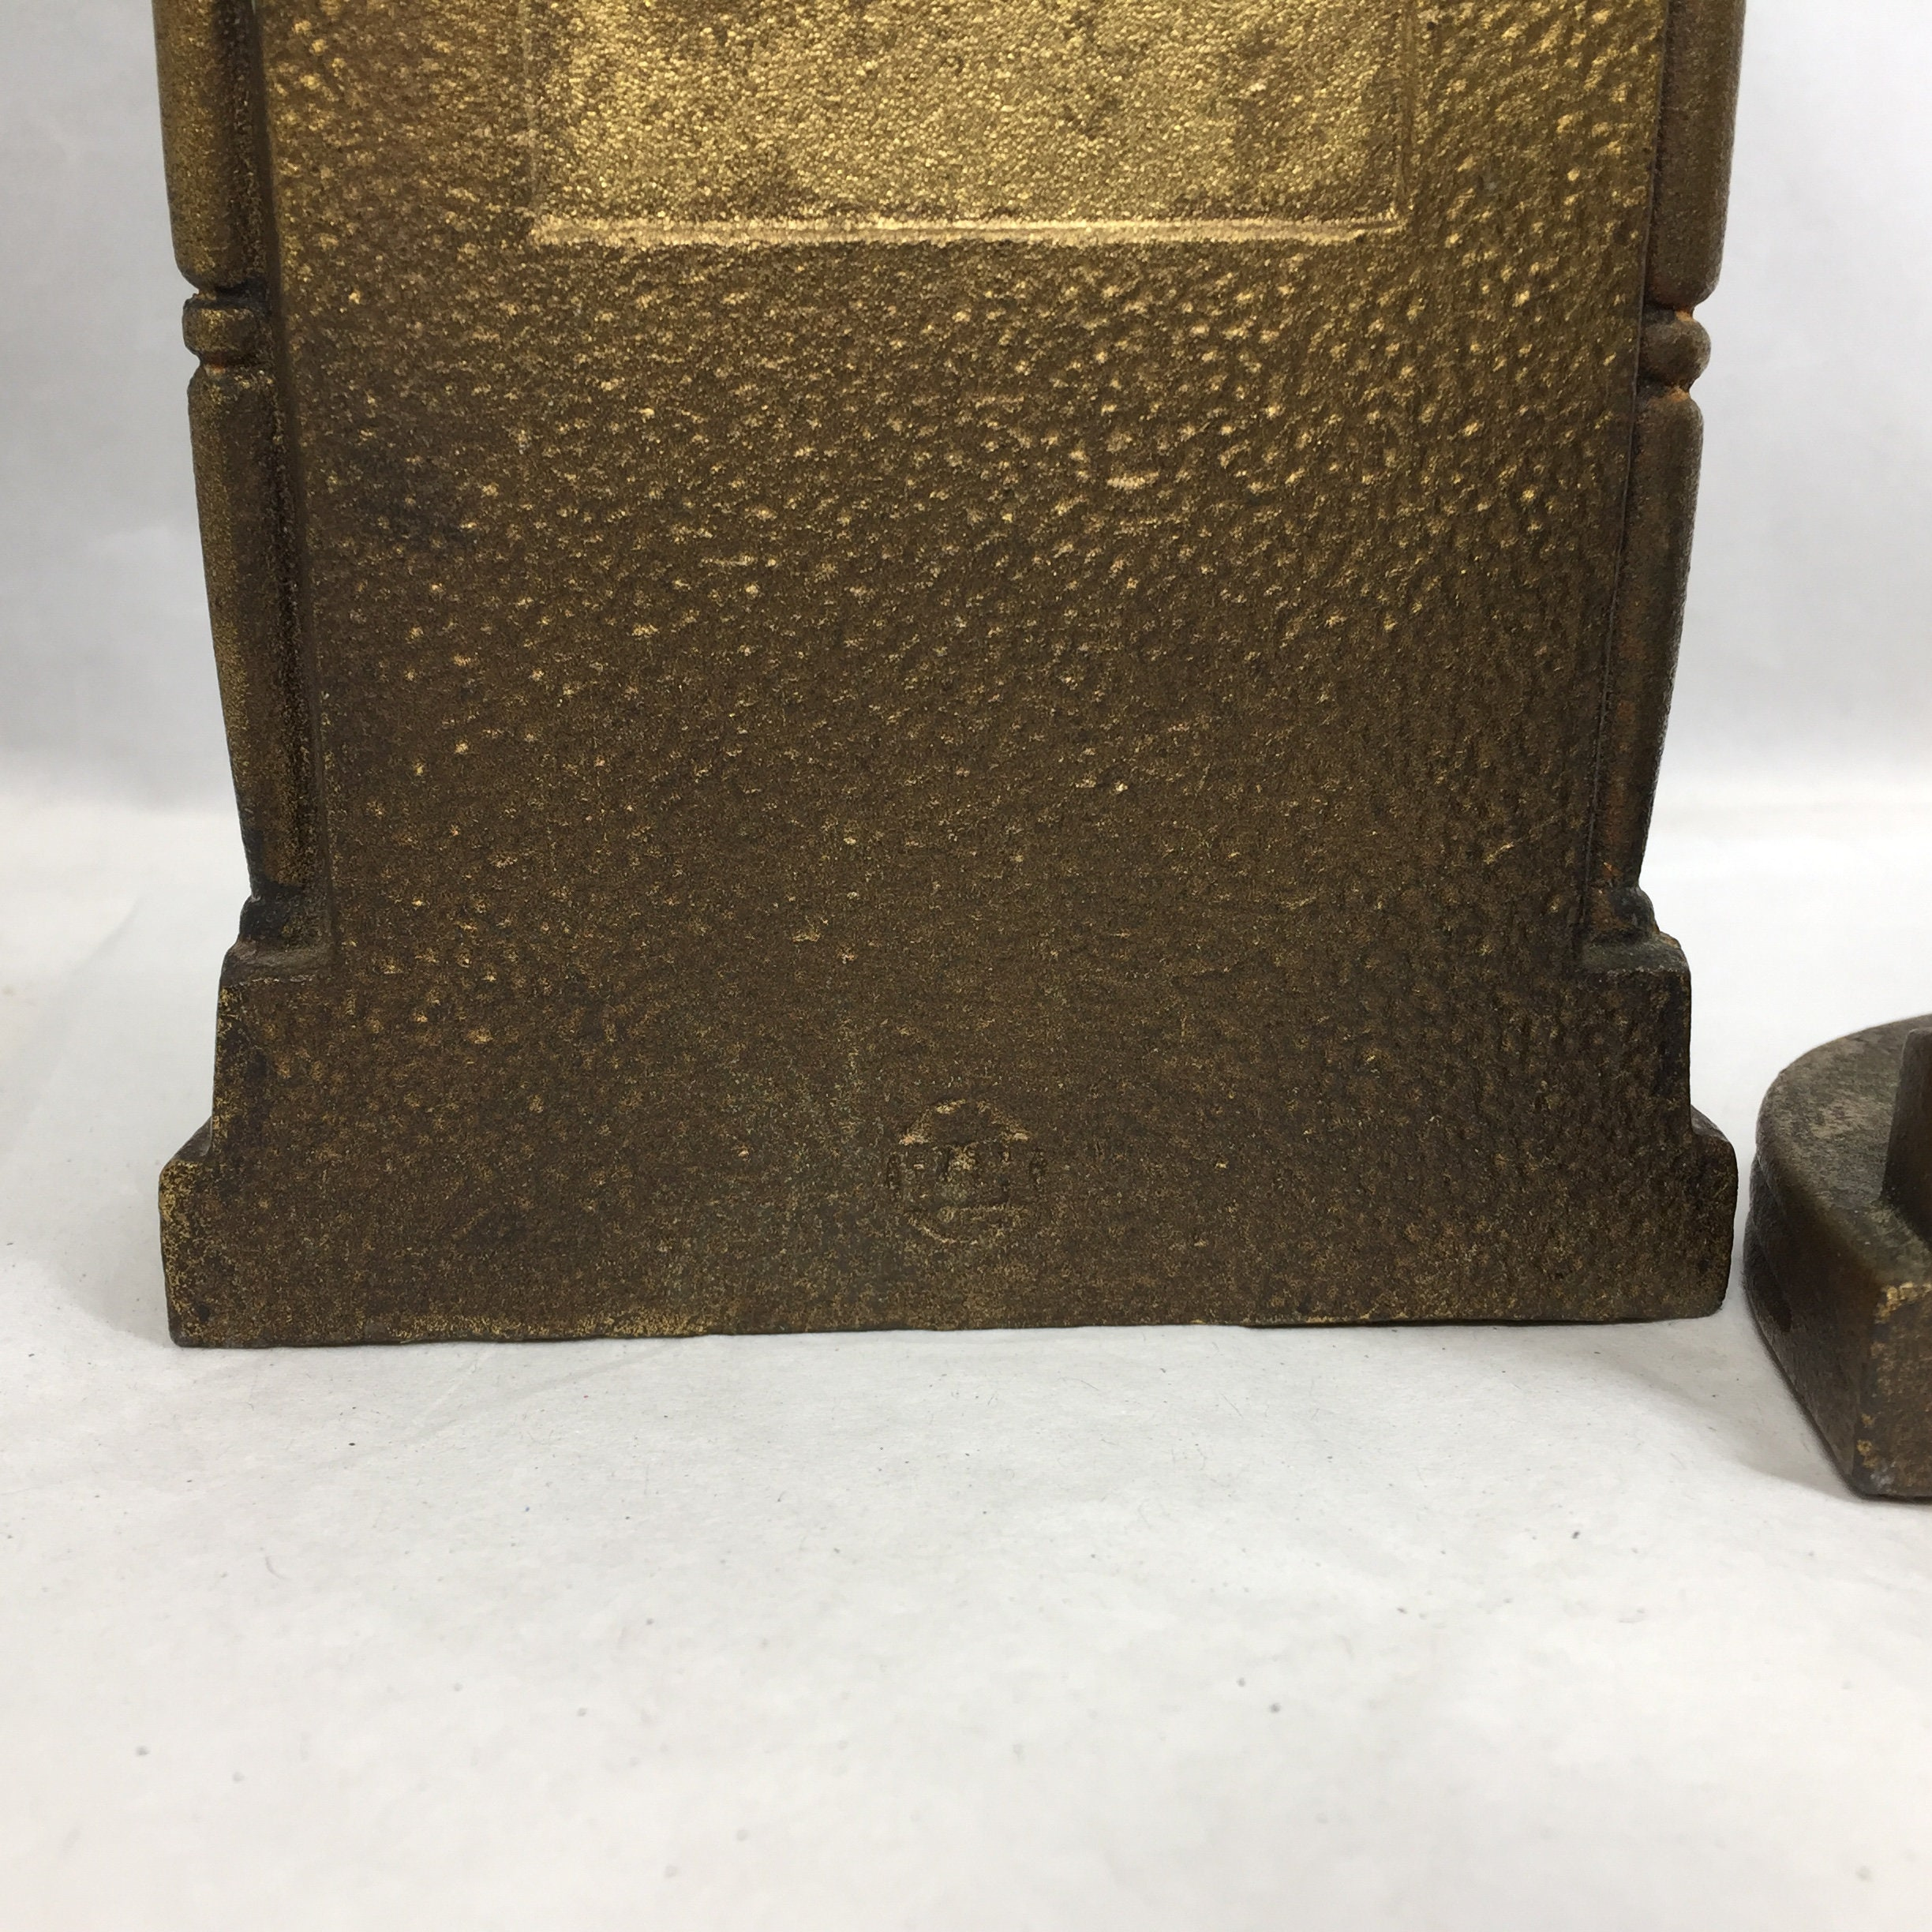 Image 6 of Antique Bradley and Hubbard Bookends